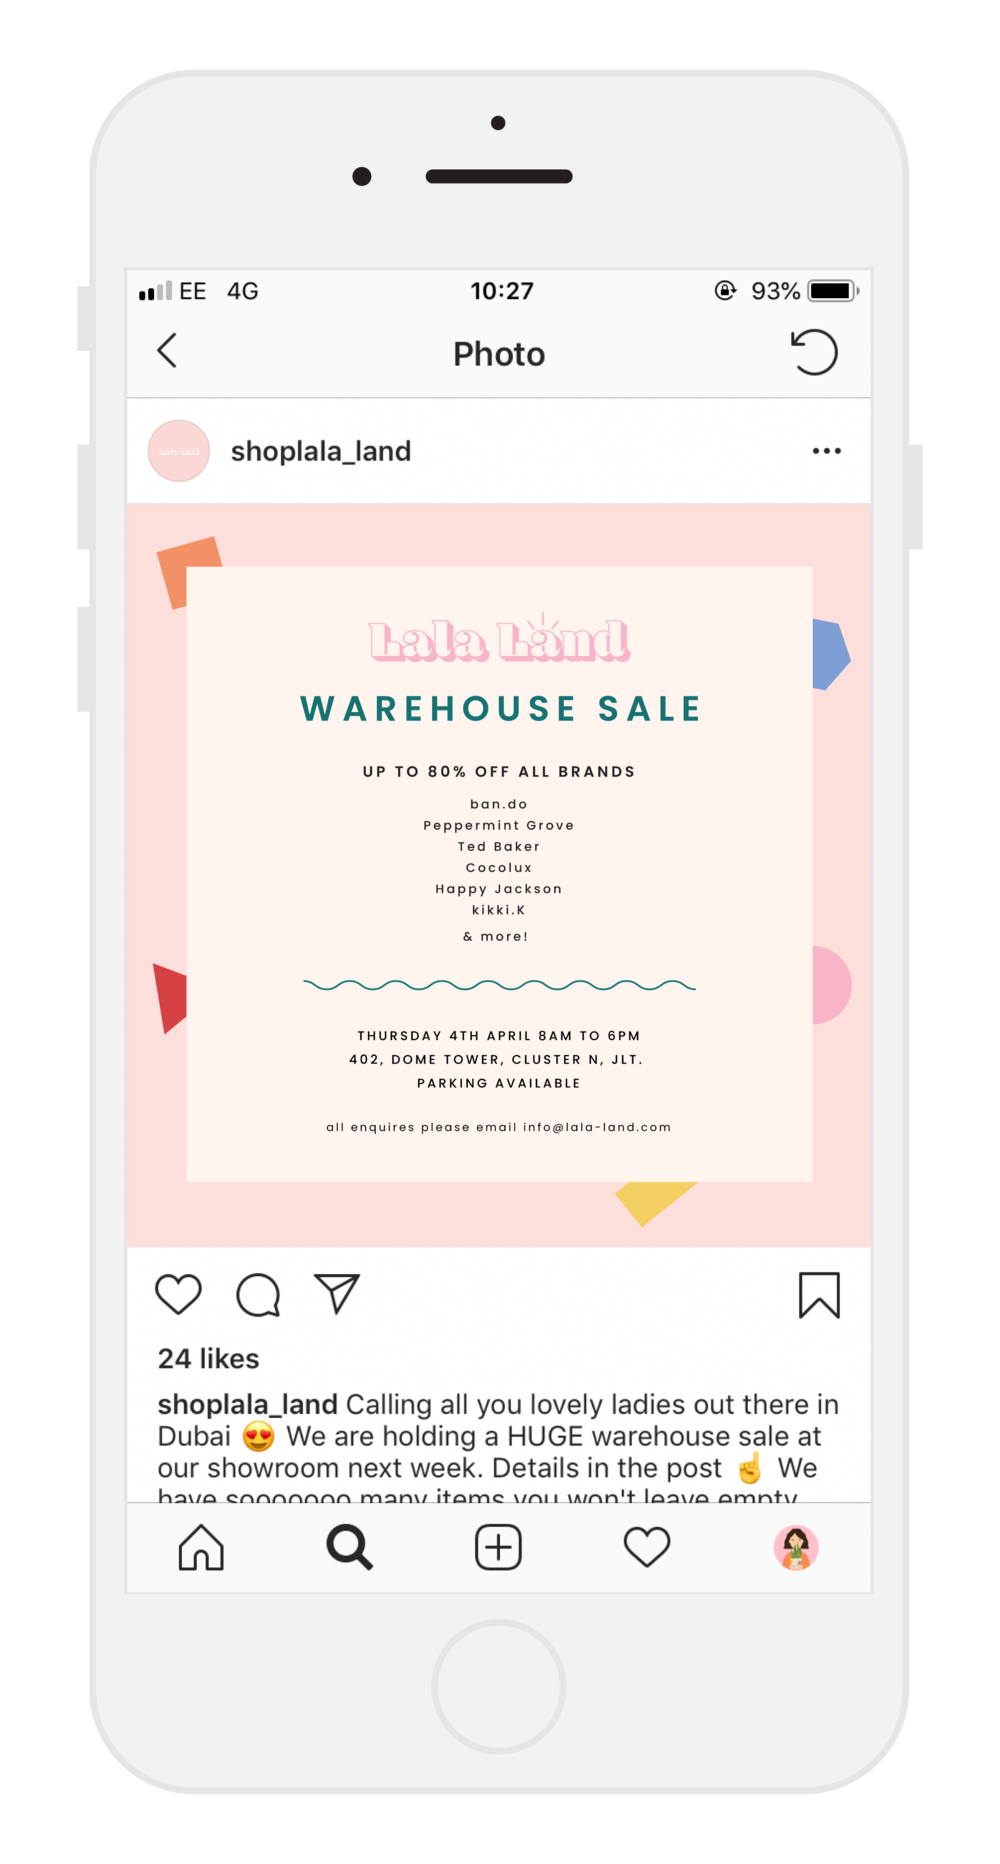 WAREHOUSE SALE GRAPHICS-01.png